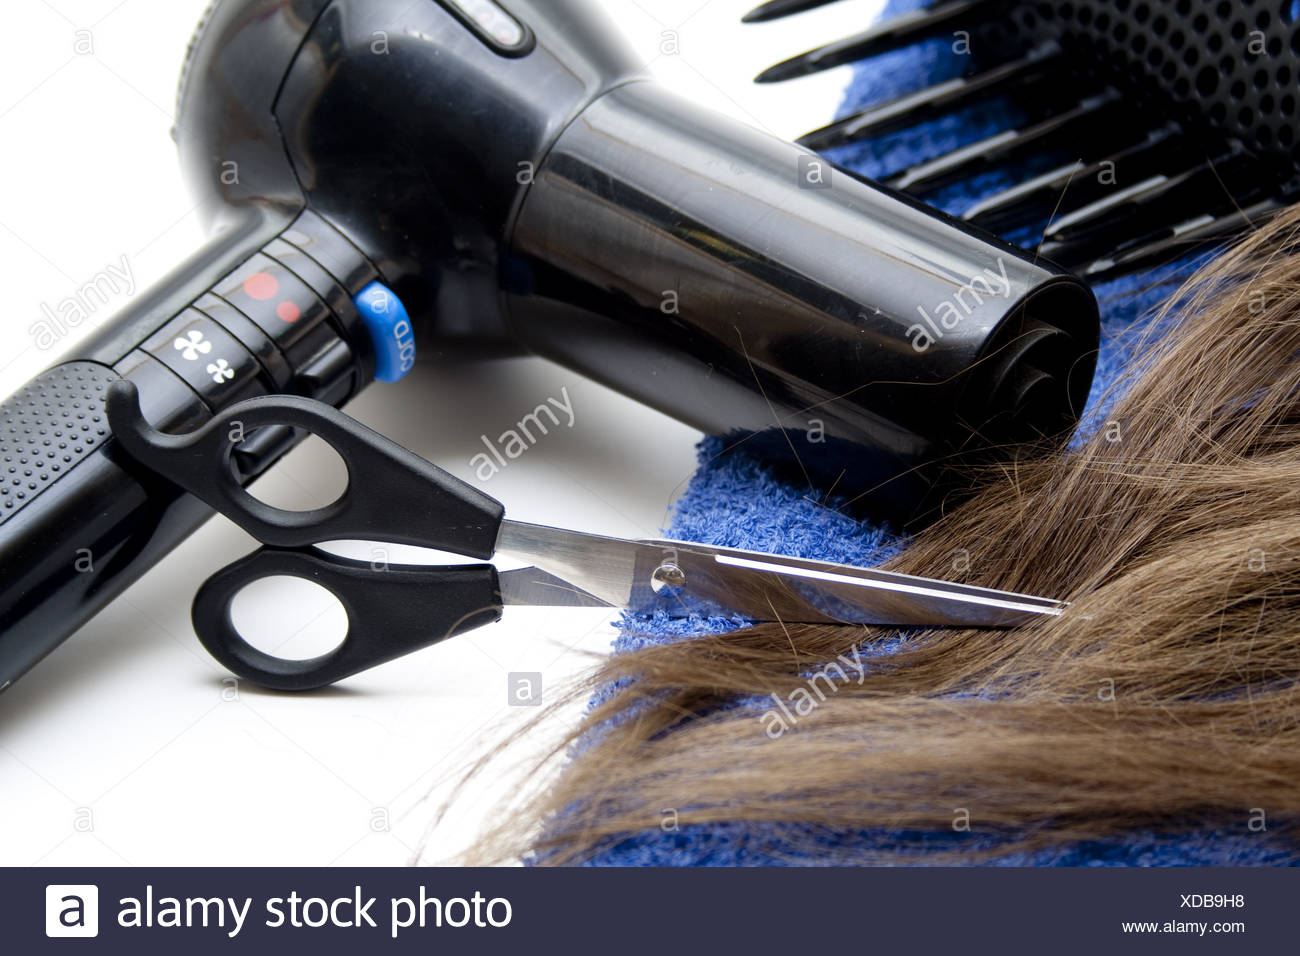 Hairdrier with scissors - Stock Image